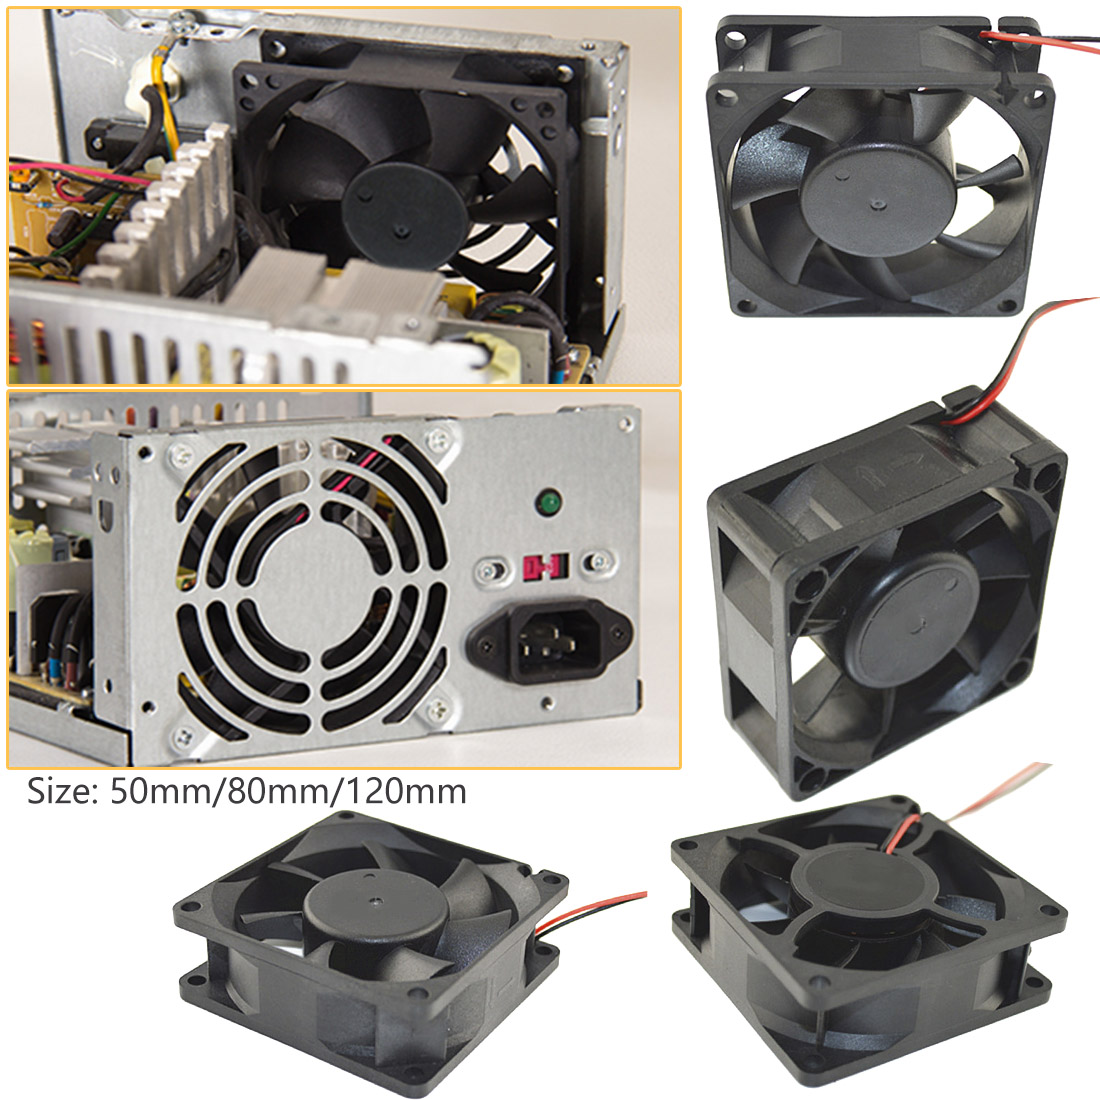 <font><b>12V</b></font> Cooler <font><b>Fan</b></font> for <font><b>PC</b></font> 2-Pin 50mm <font><b>80mm</b></font> 120 mm Computer CPU System Heatsink Brushless Cooling <font><b>Fan</b></font> image